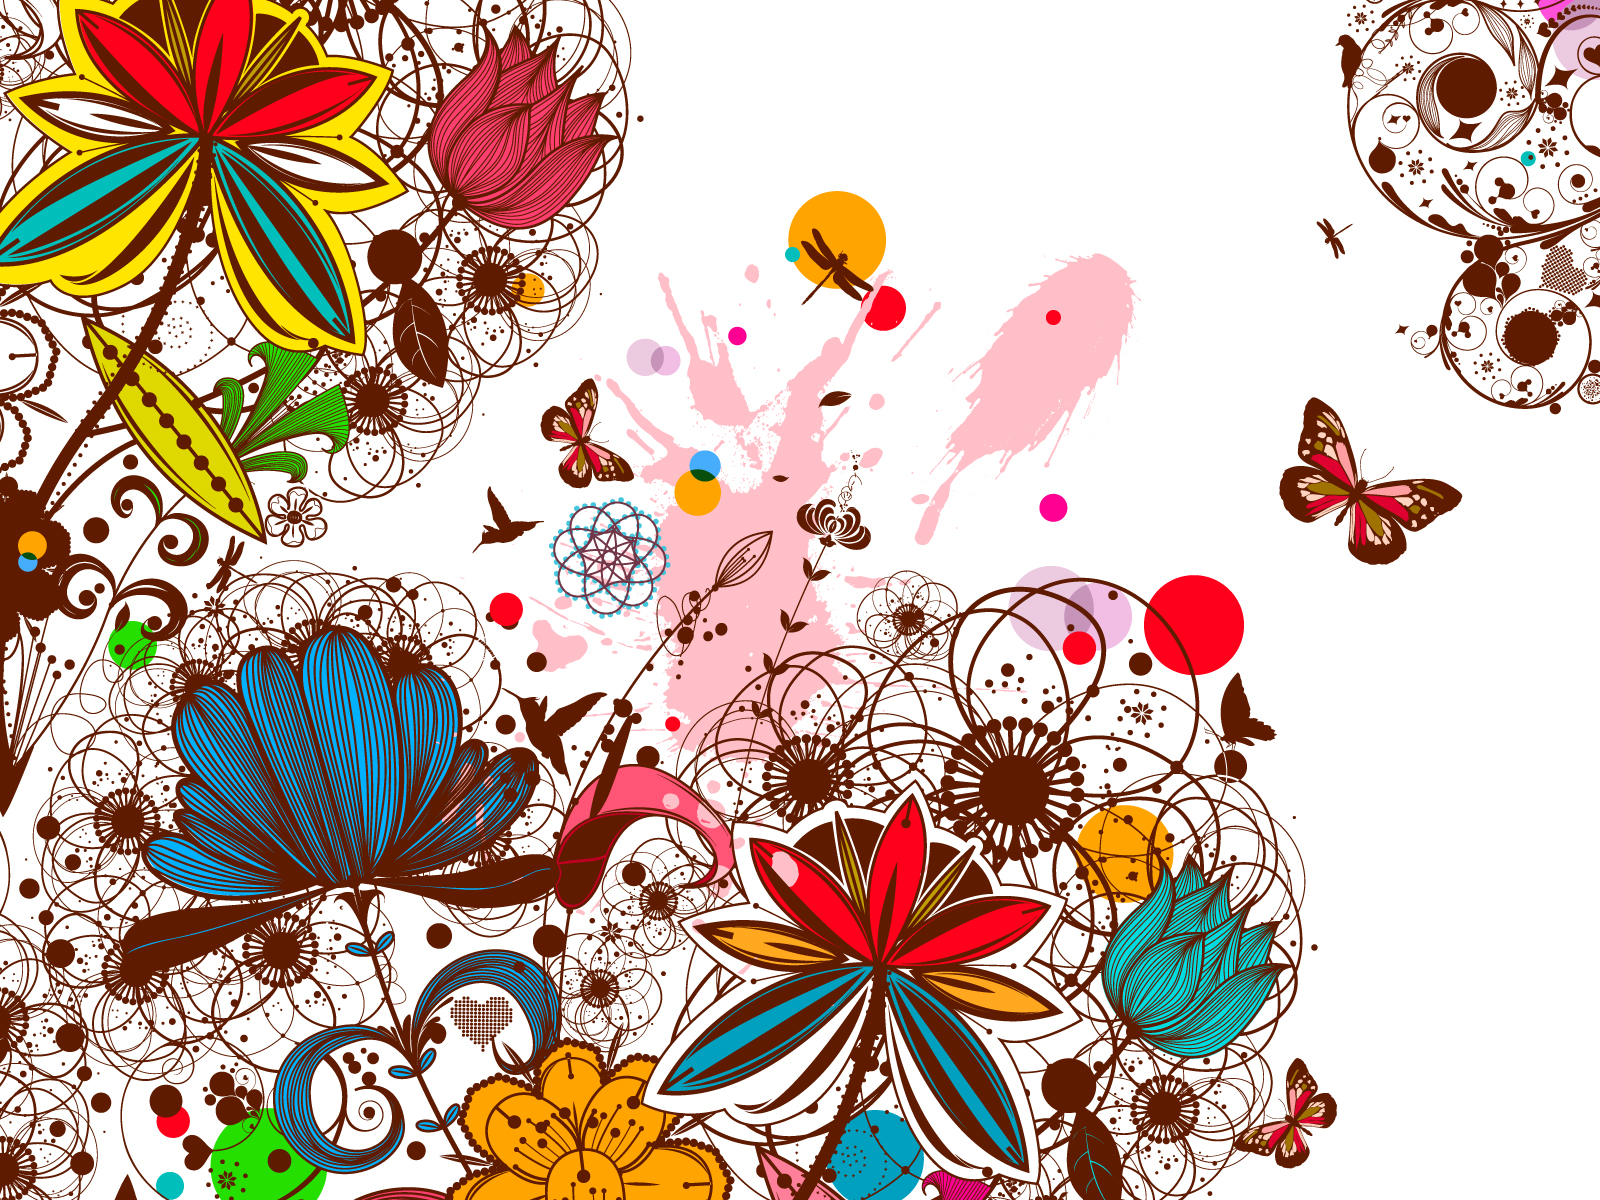 Creative Vintage Floral Backgrounds For Powerpoint Templates Ppt